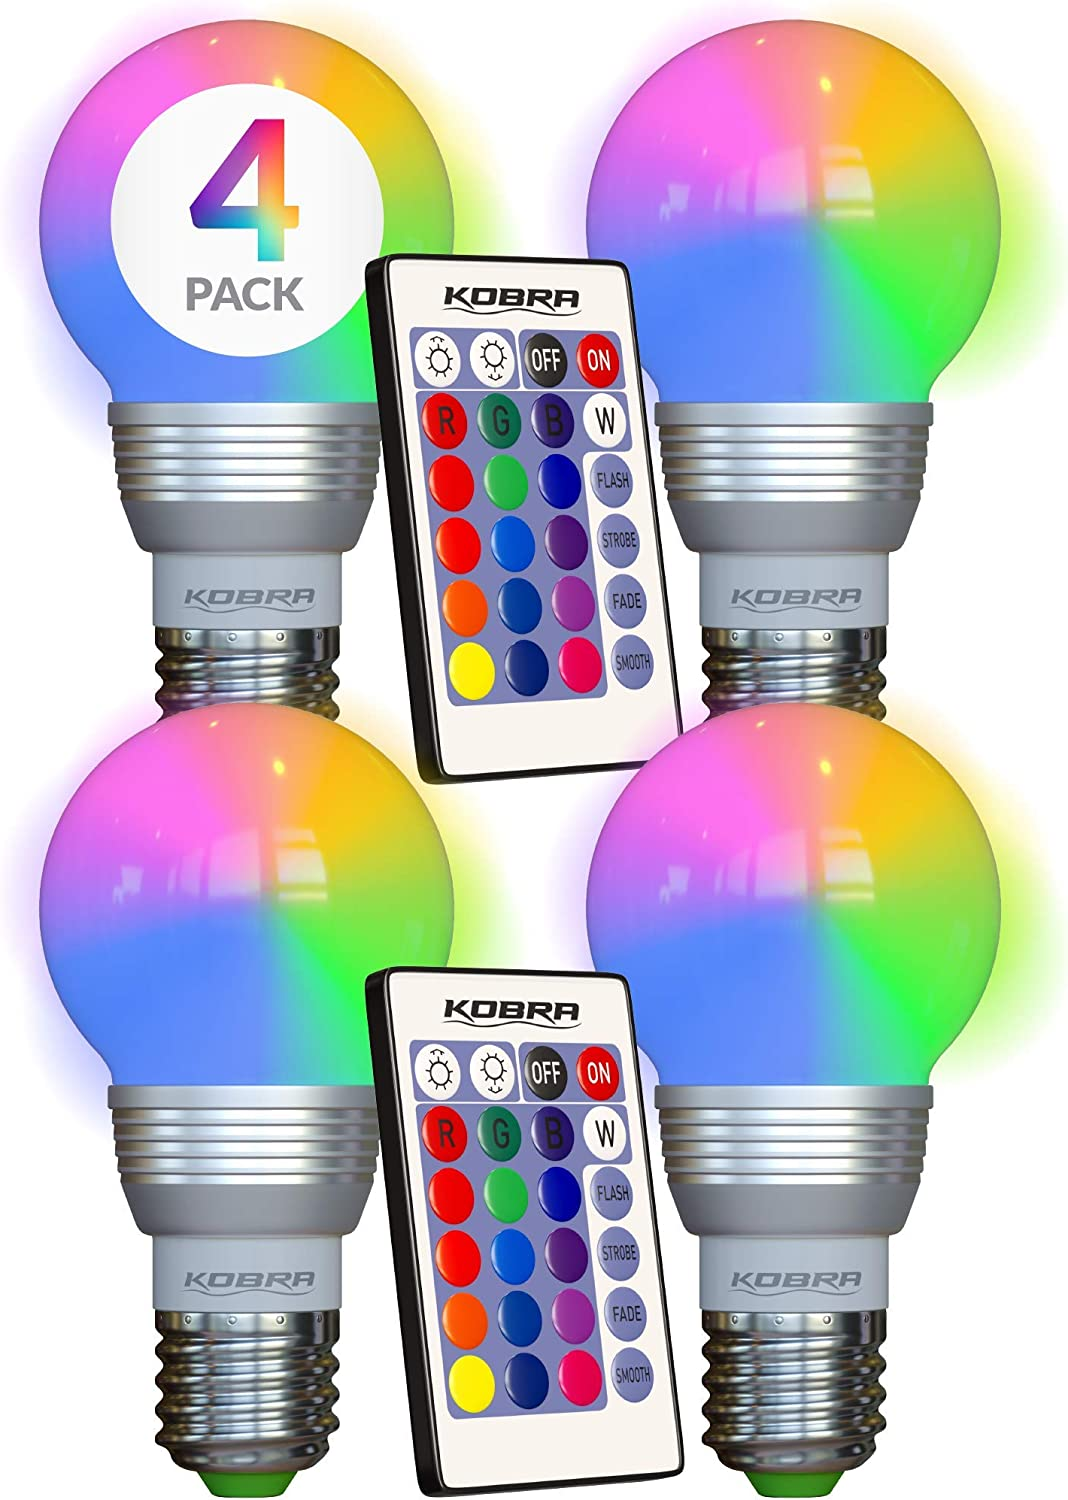 Kobra Led Bulb Color Changing Light Bulb With Remote Control 4 Pack 16 Different Color Choices Smooth Flash Or Strobe Mode Premium Quality Energy Saving Retro Led Lamp Amazon Com